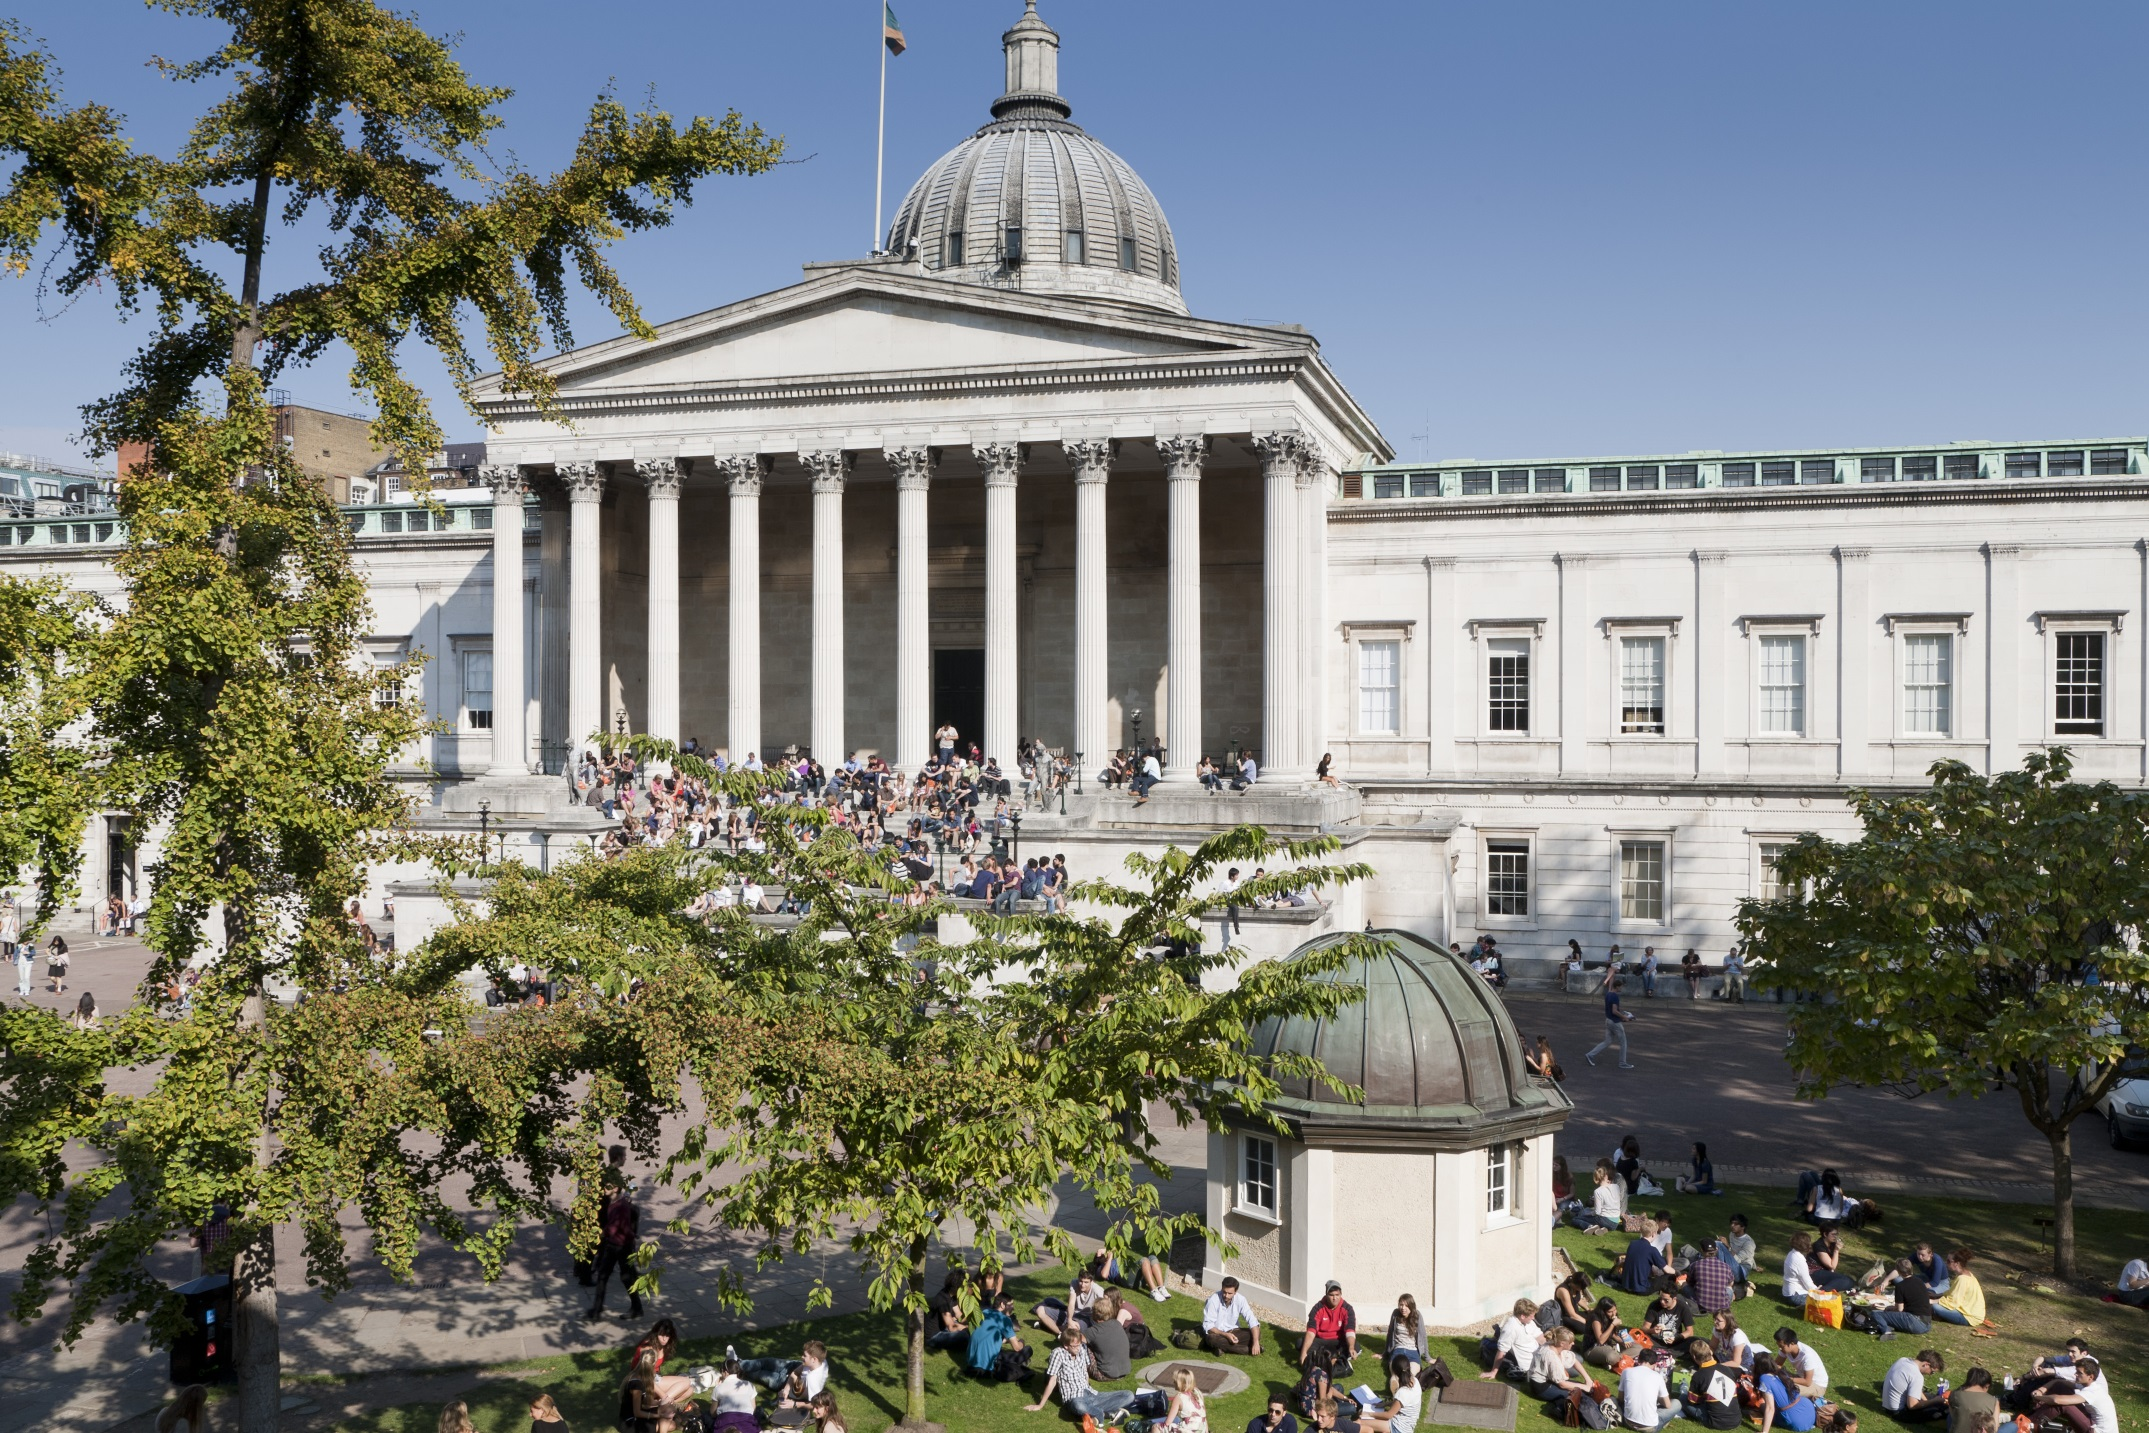 ucl london s global university rh ucl ac uk